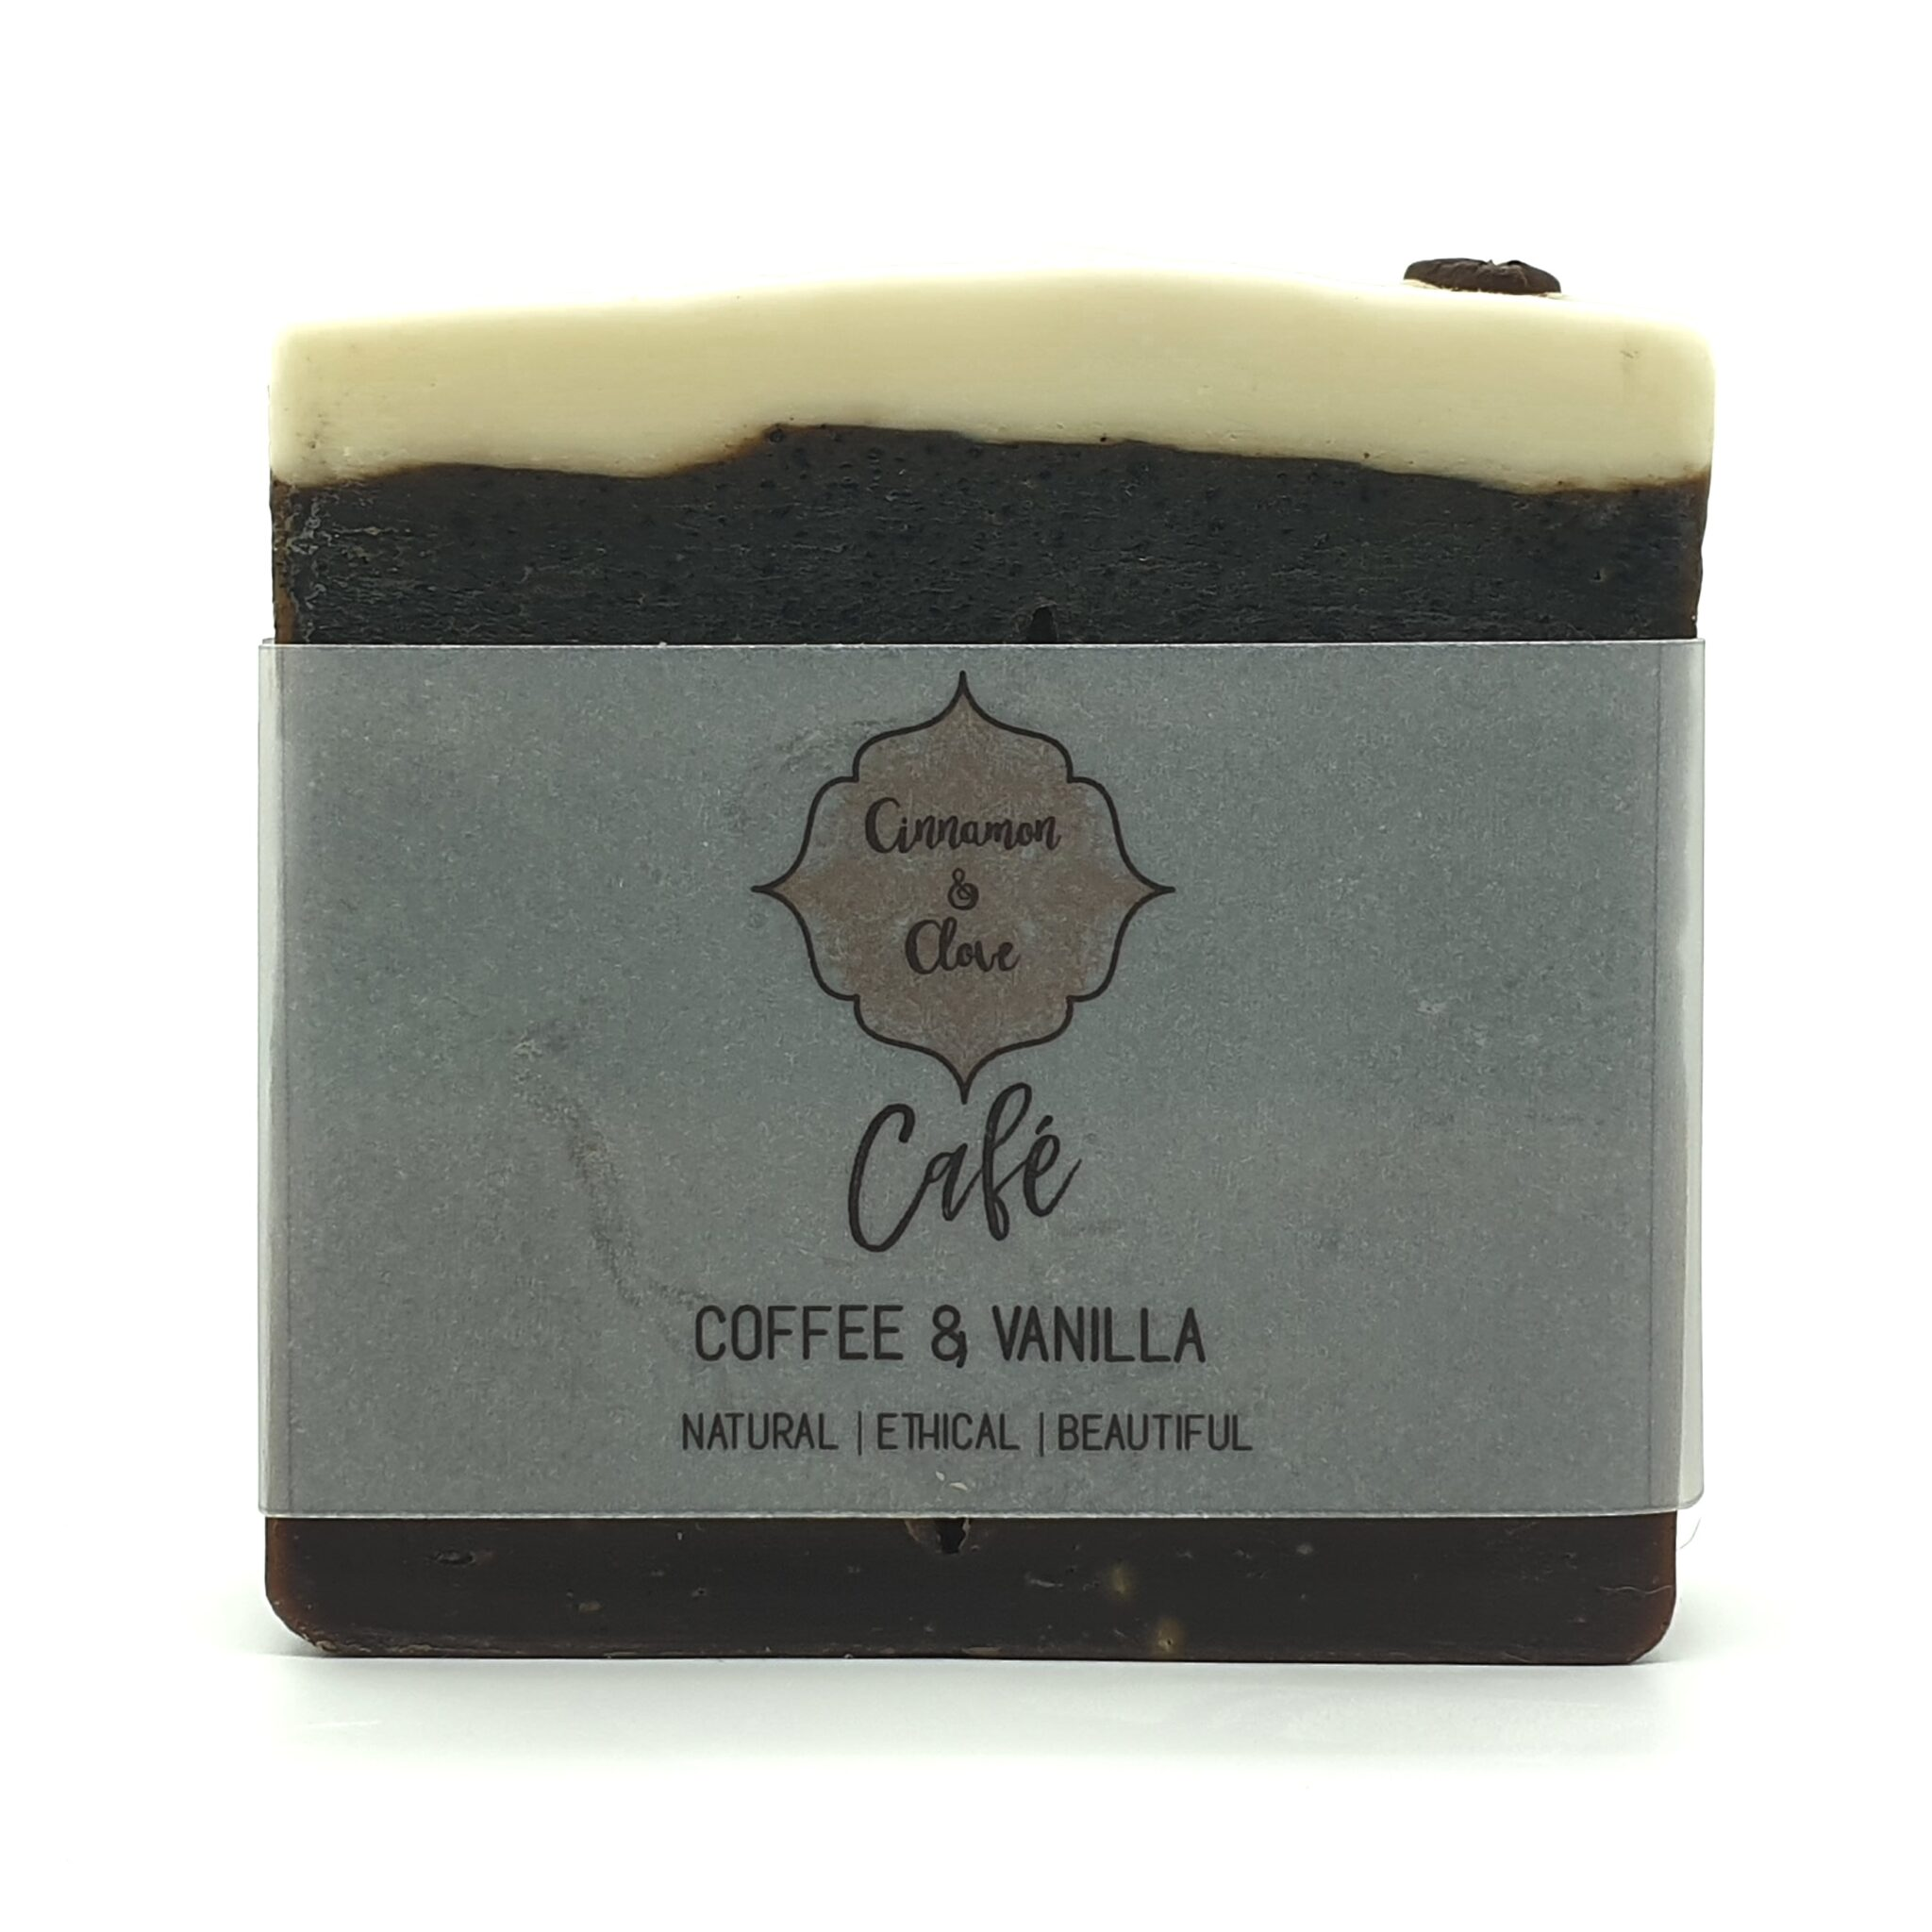 Cafe – Coffee And Vanilla Handcrafted Exfoliating All Natural Artisan Soap By Cinnamon And Clove (Fitzroy)